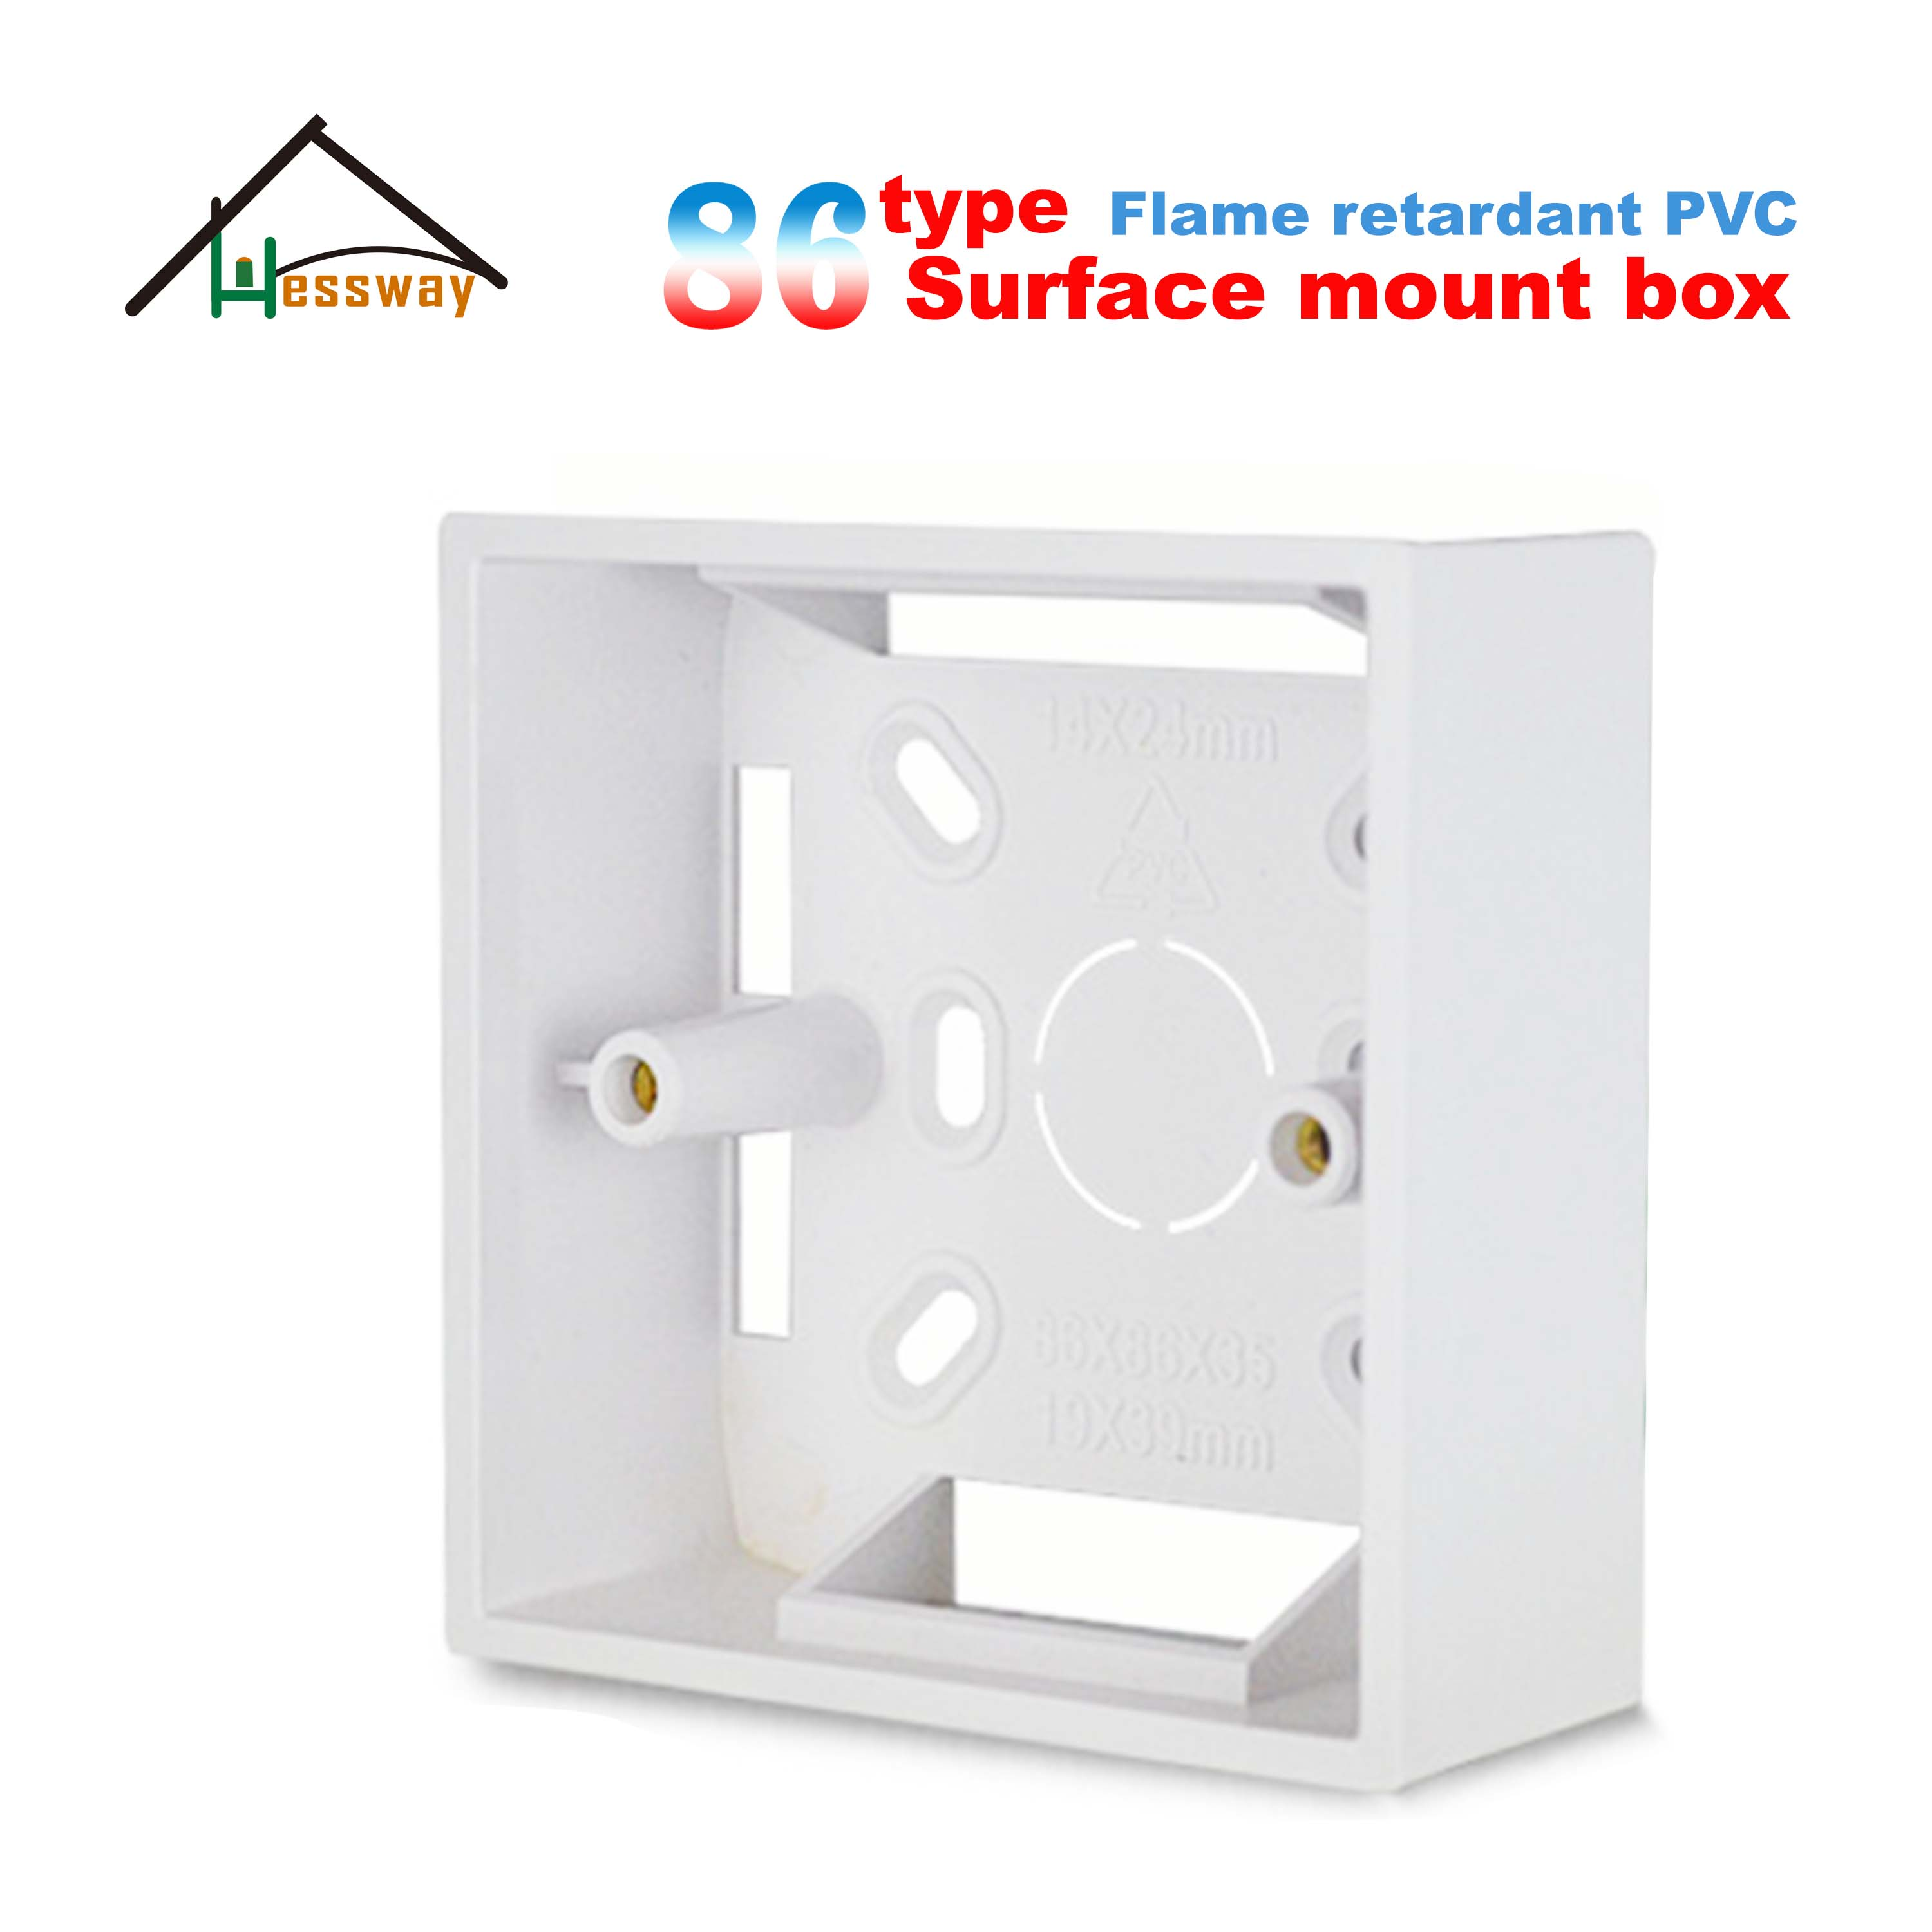 Universal Wall Mounting Box With 86 Type Surface Mount Box